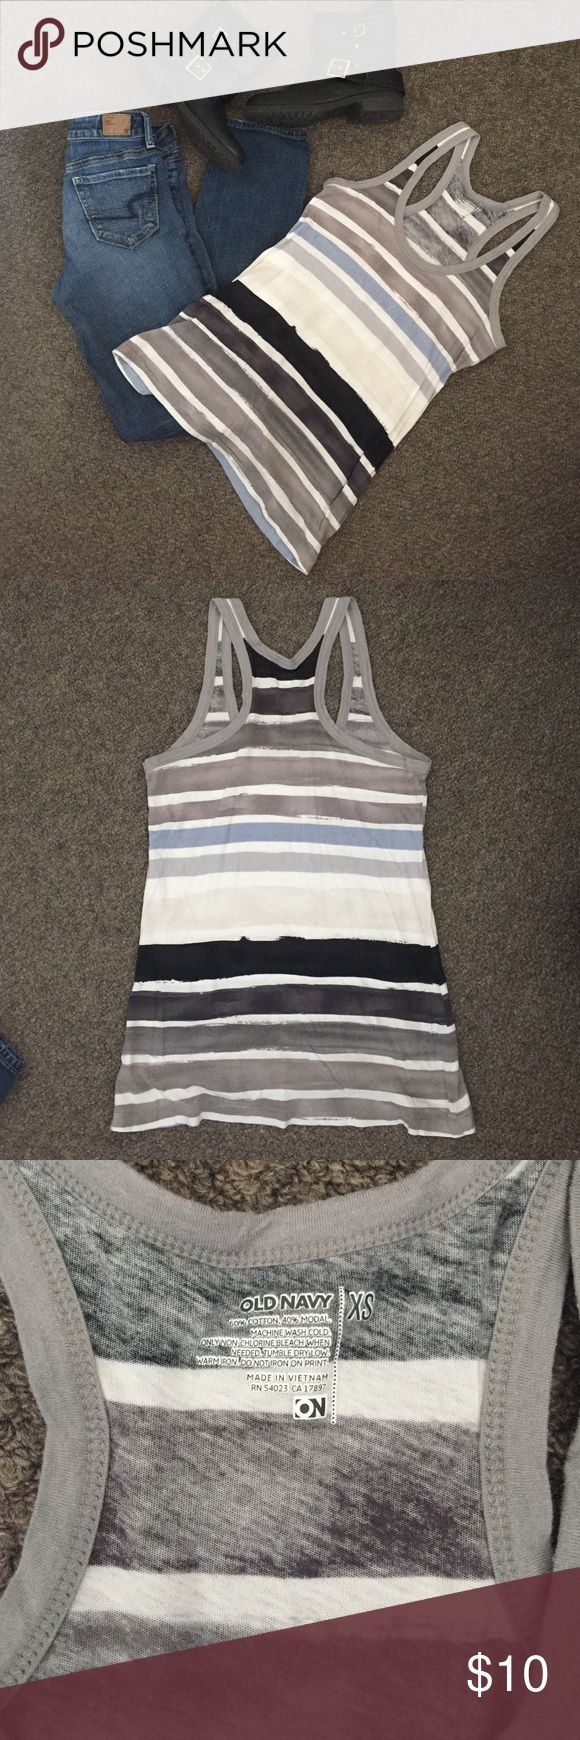 💋Old Navy Striped Racerback Tank Top, Size XS 💋Old Navy Striped Racerback Tank Top, Size XS.  Excellent condition! No flaws! (Jeans and boots (sold!) also for sale in my closet! 💁🏼).                                                             🎉I'm trying to purge my closet so make an offer 😊🎉. All clothing is clean, any flaws will be noted in the description, and come from a smoke free home 😁💁🏼.                                                      💫Bundle to save!✨ Old Navy Tops…